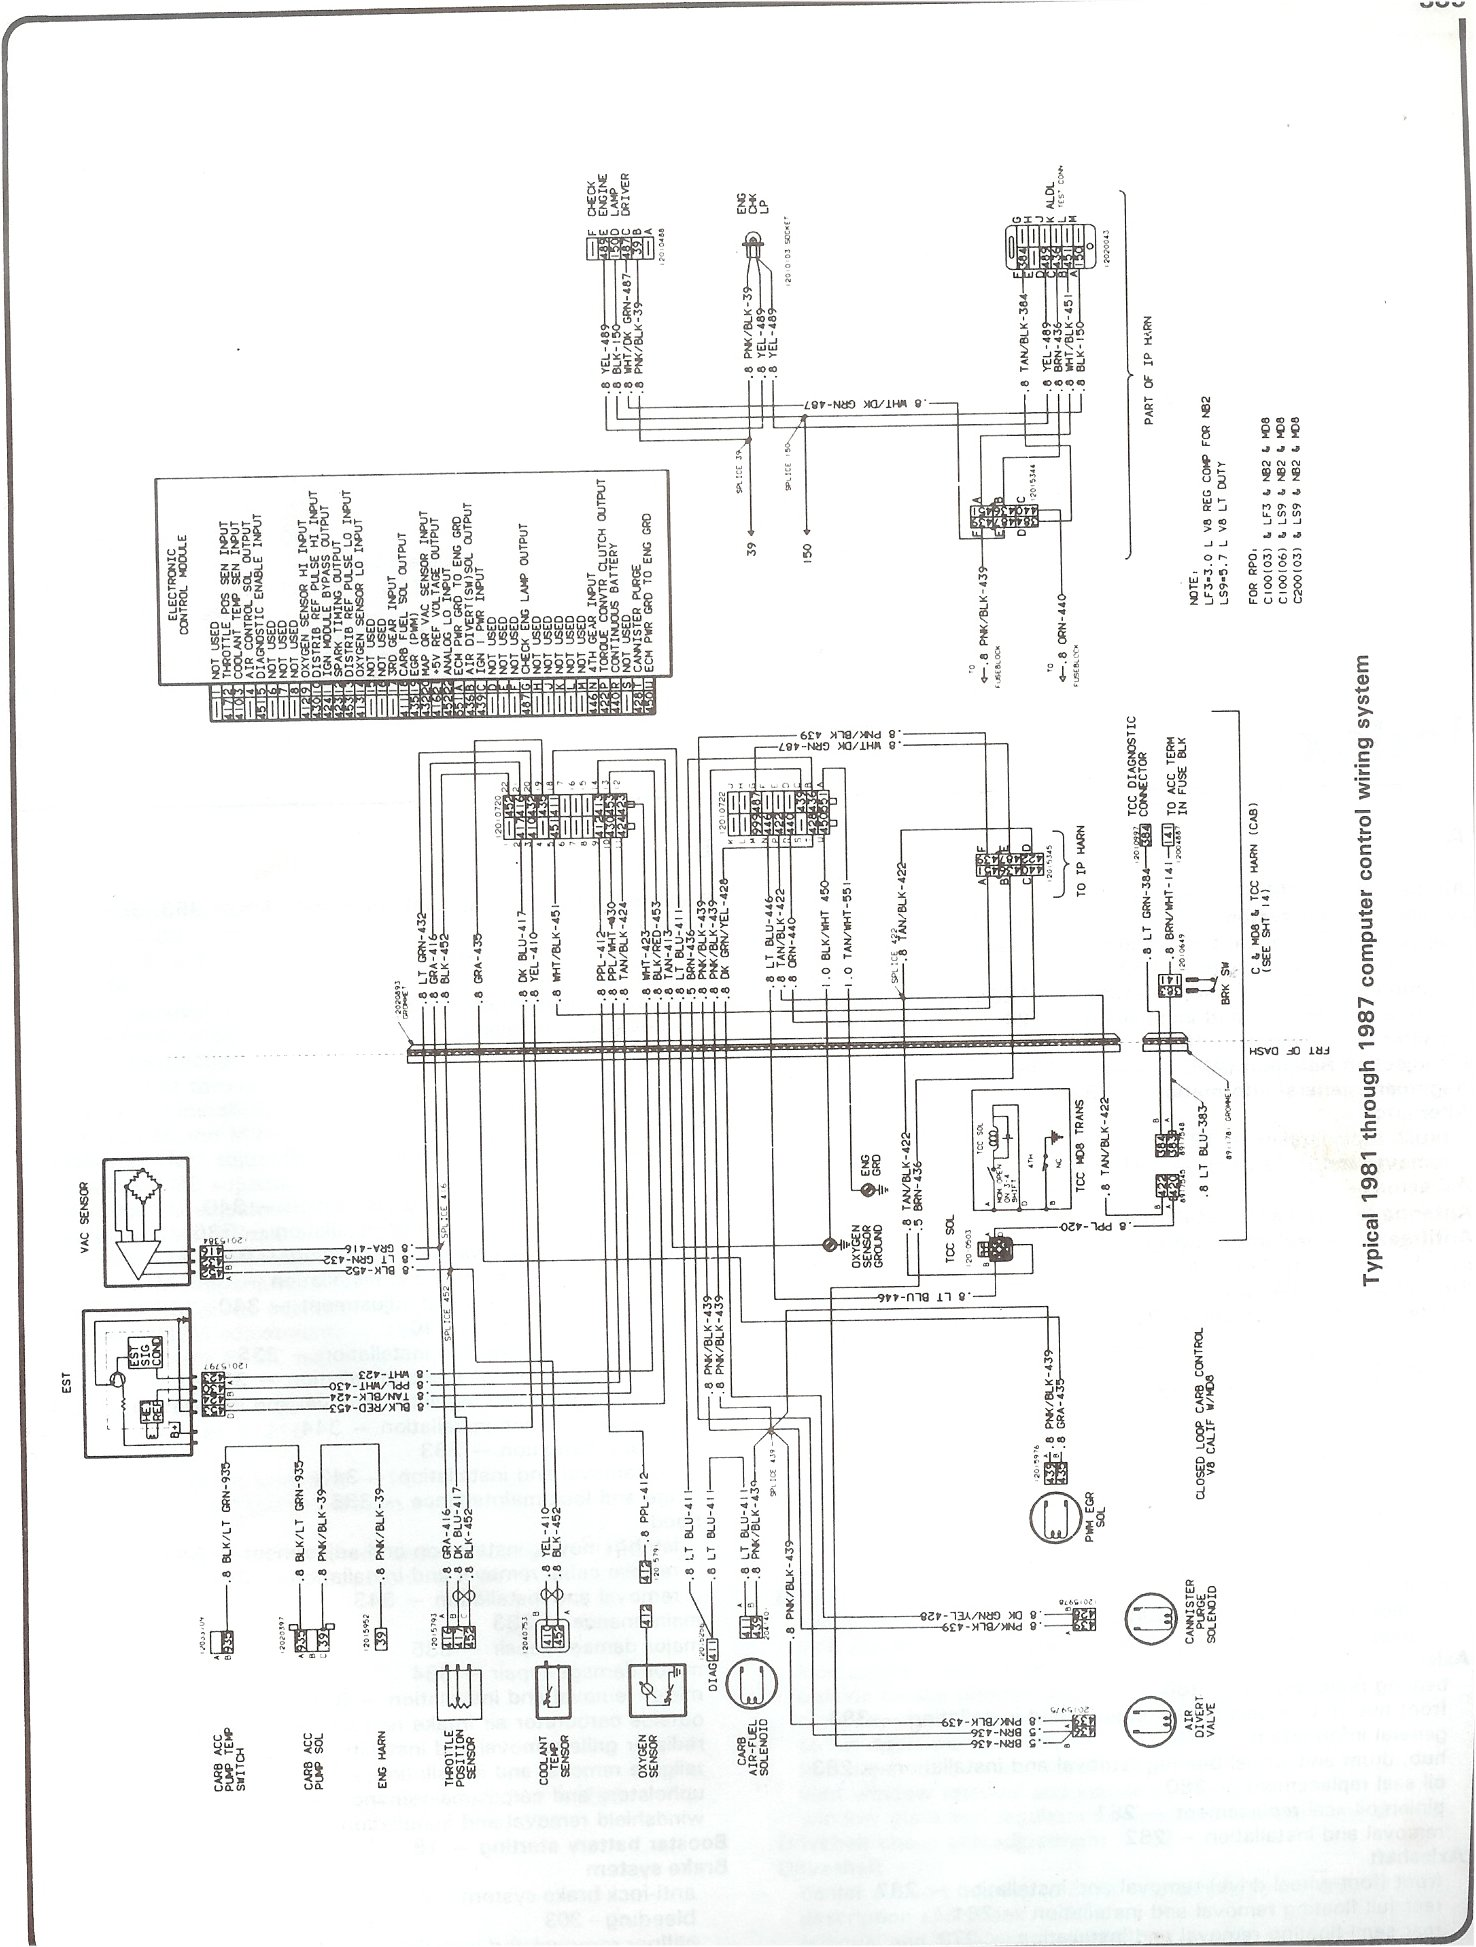 1979 Chevy Blazer Wiring Diagram Data 73 Corvette